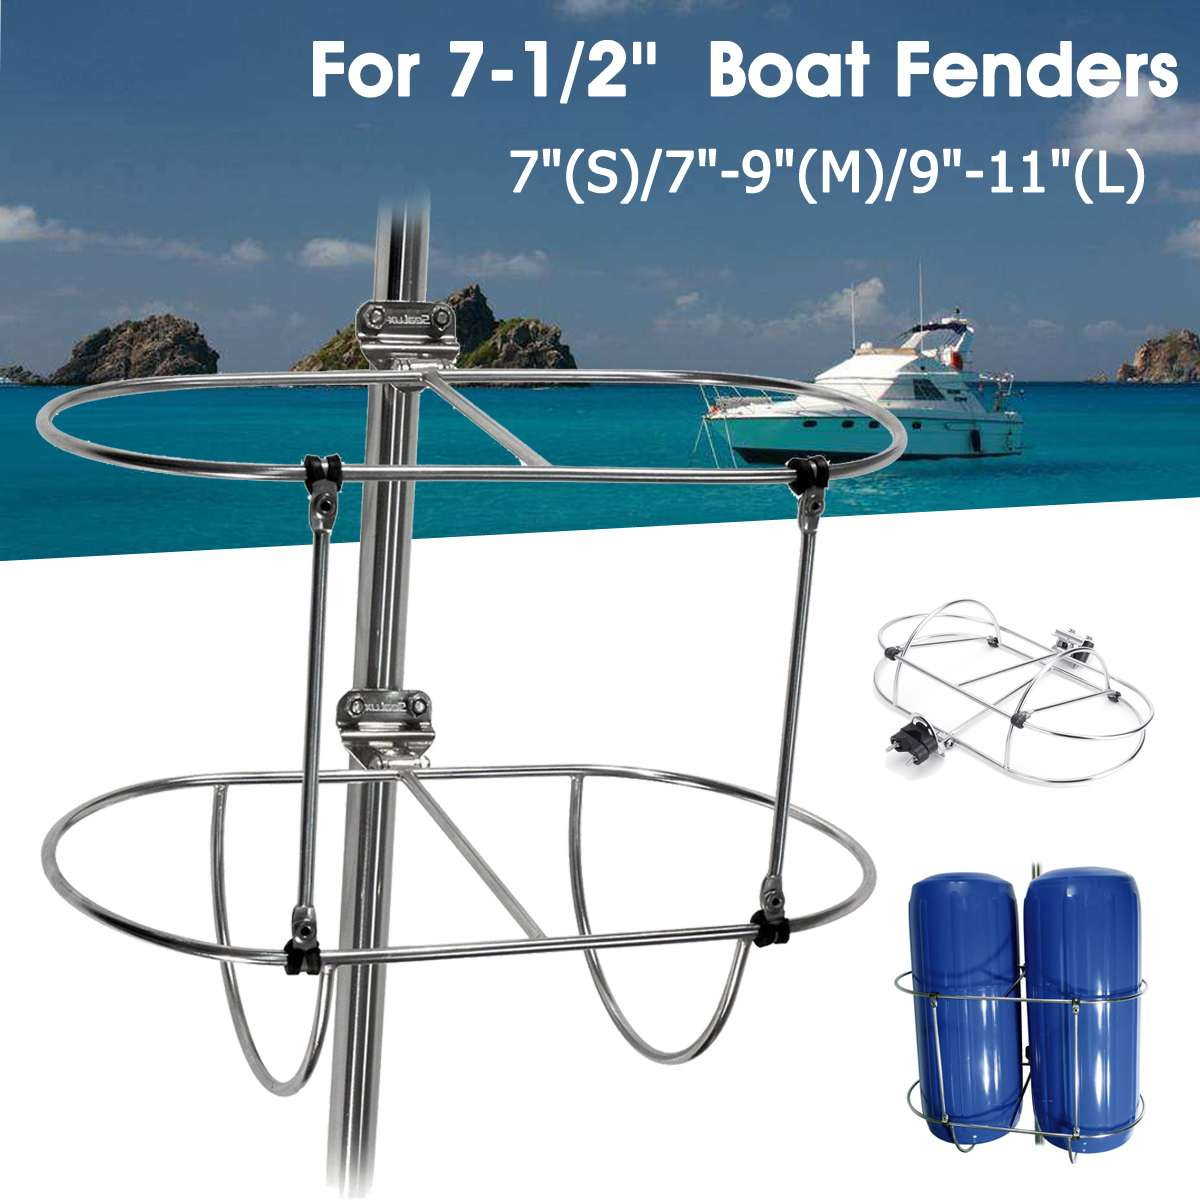 "Audew 7""(S)/7""-9""(M)/9""-11""(L) Stainless Steel Silver Folding Double Fender Holder Rack Boat Parts For 7-1/2'' Boat Fenders"